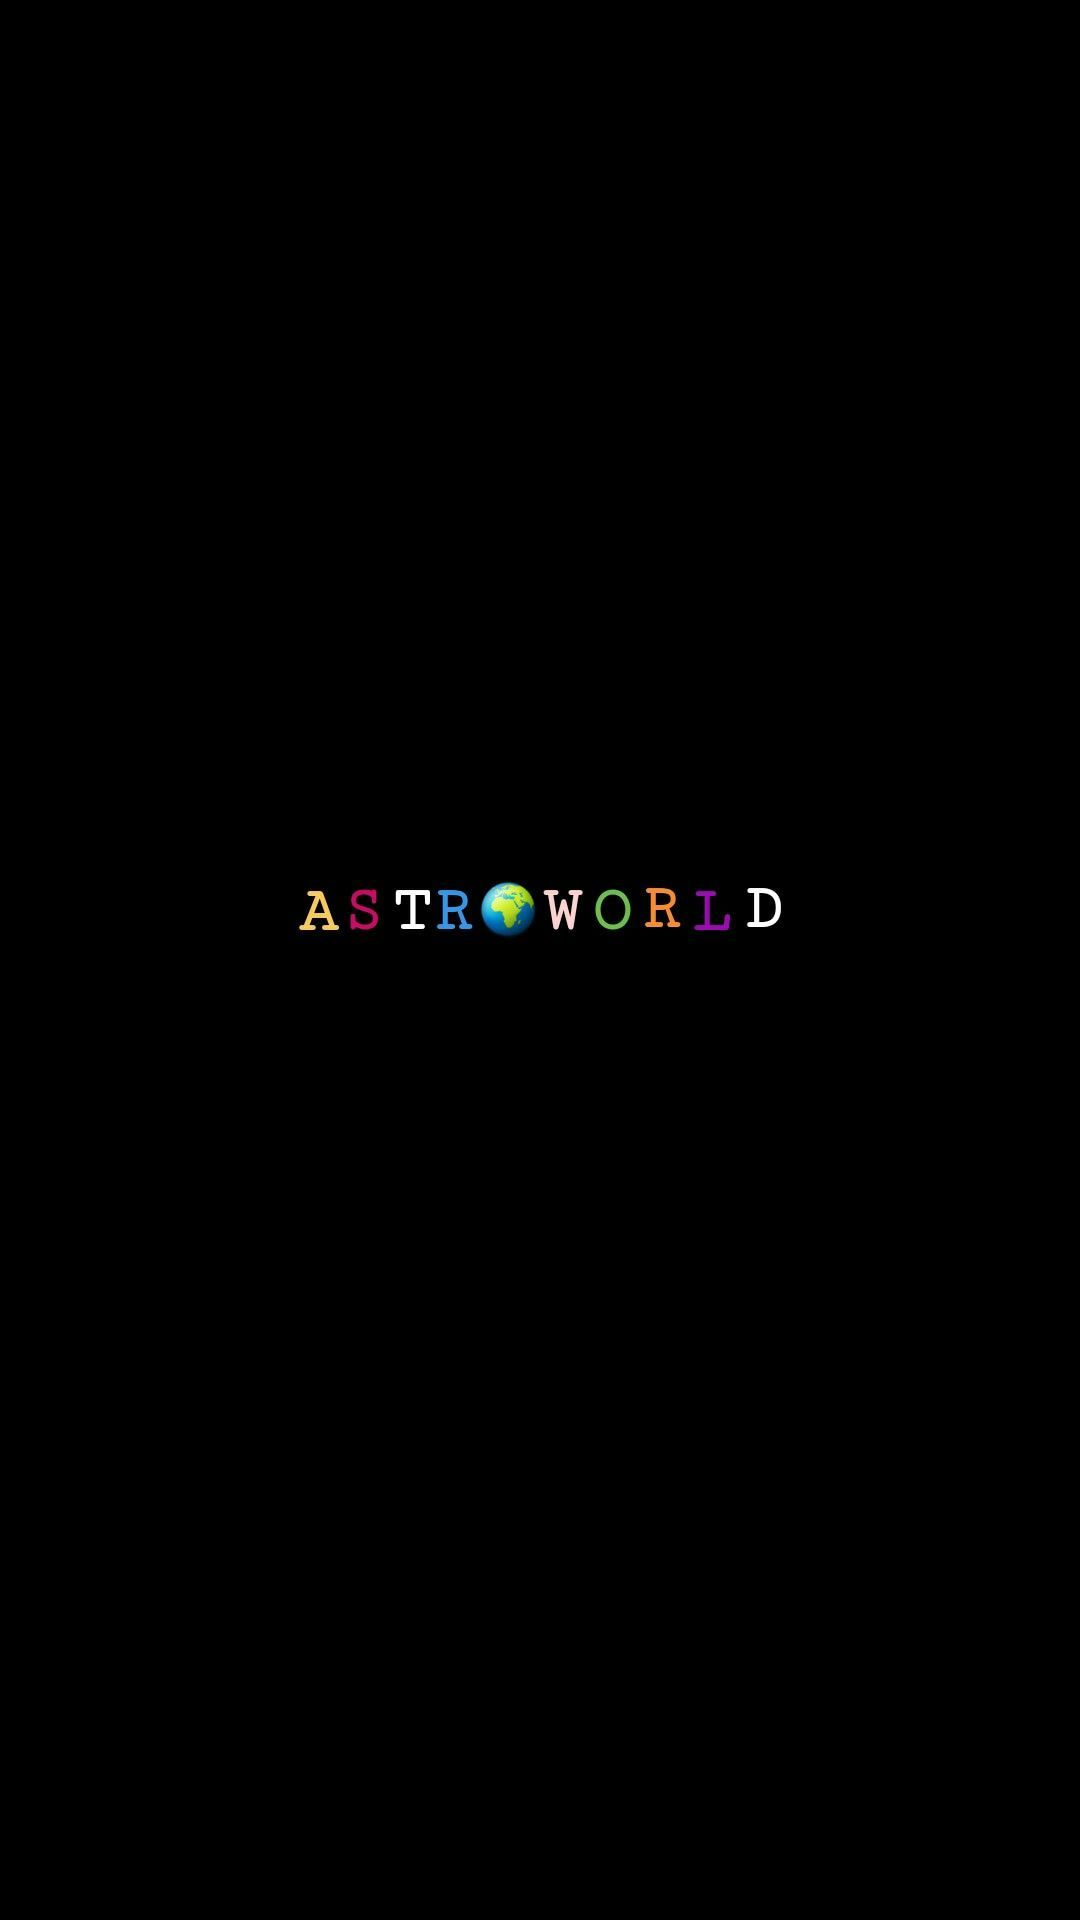 Astroworld Travis Scott Travisscottwallpapers In 2020 Travis Scott Iphone Wallpaper Hypebeast Wallpaper Hype Wallpaper